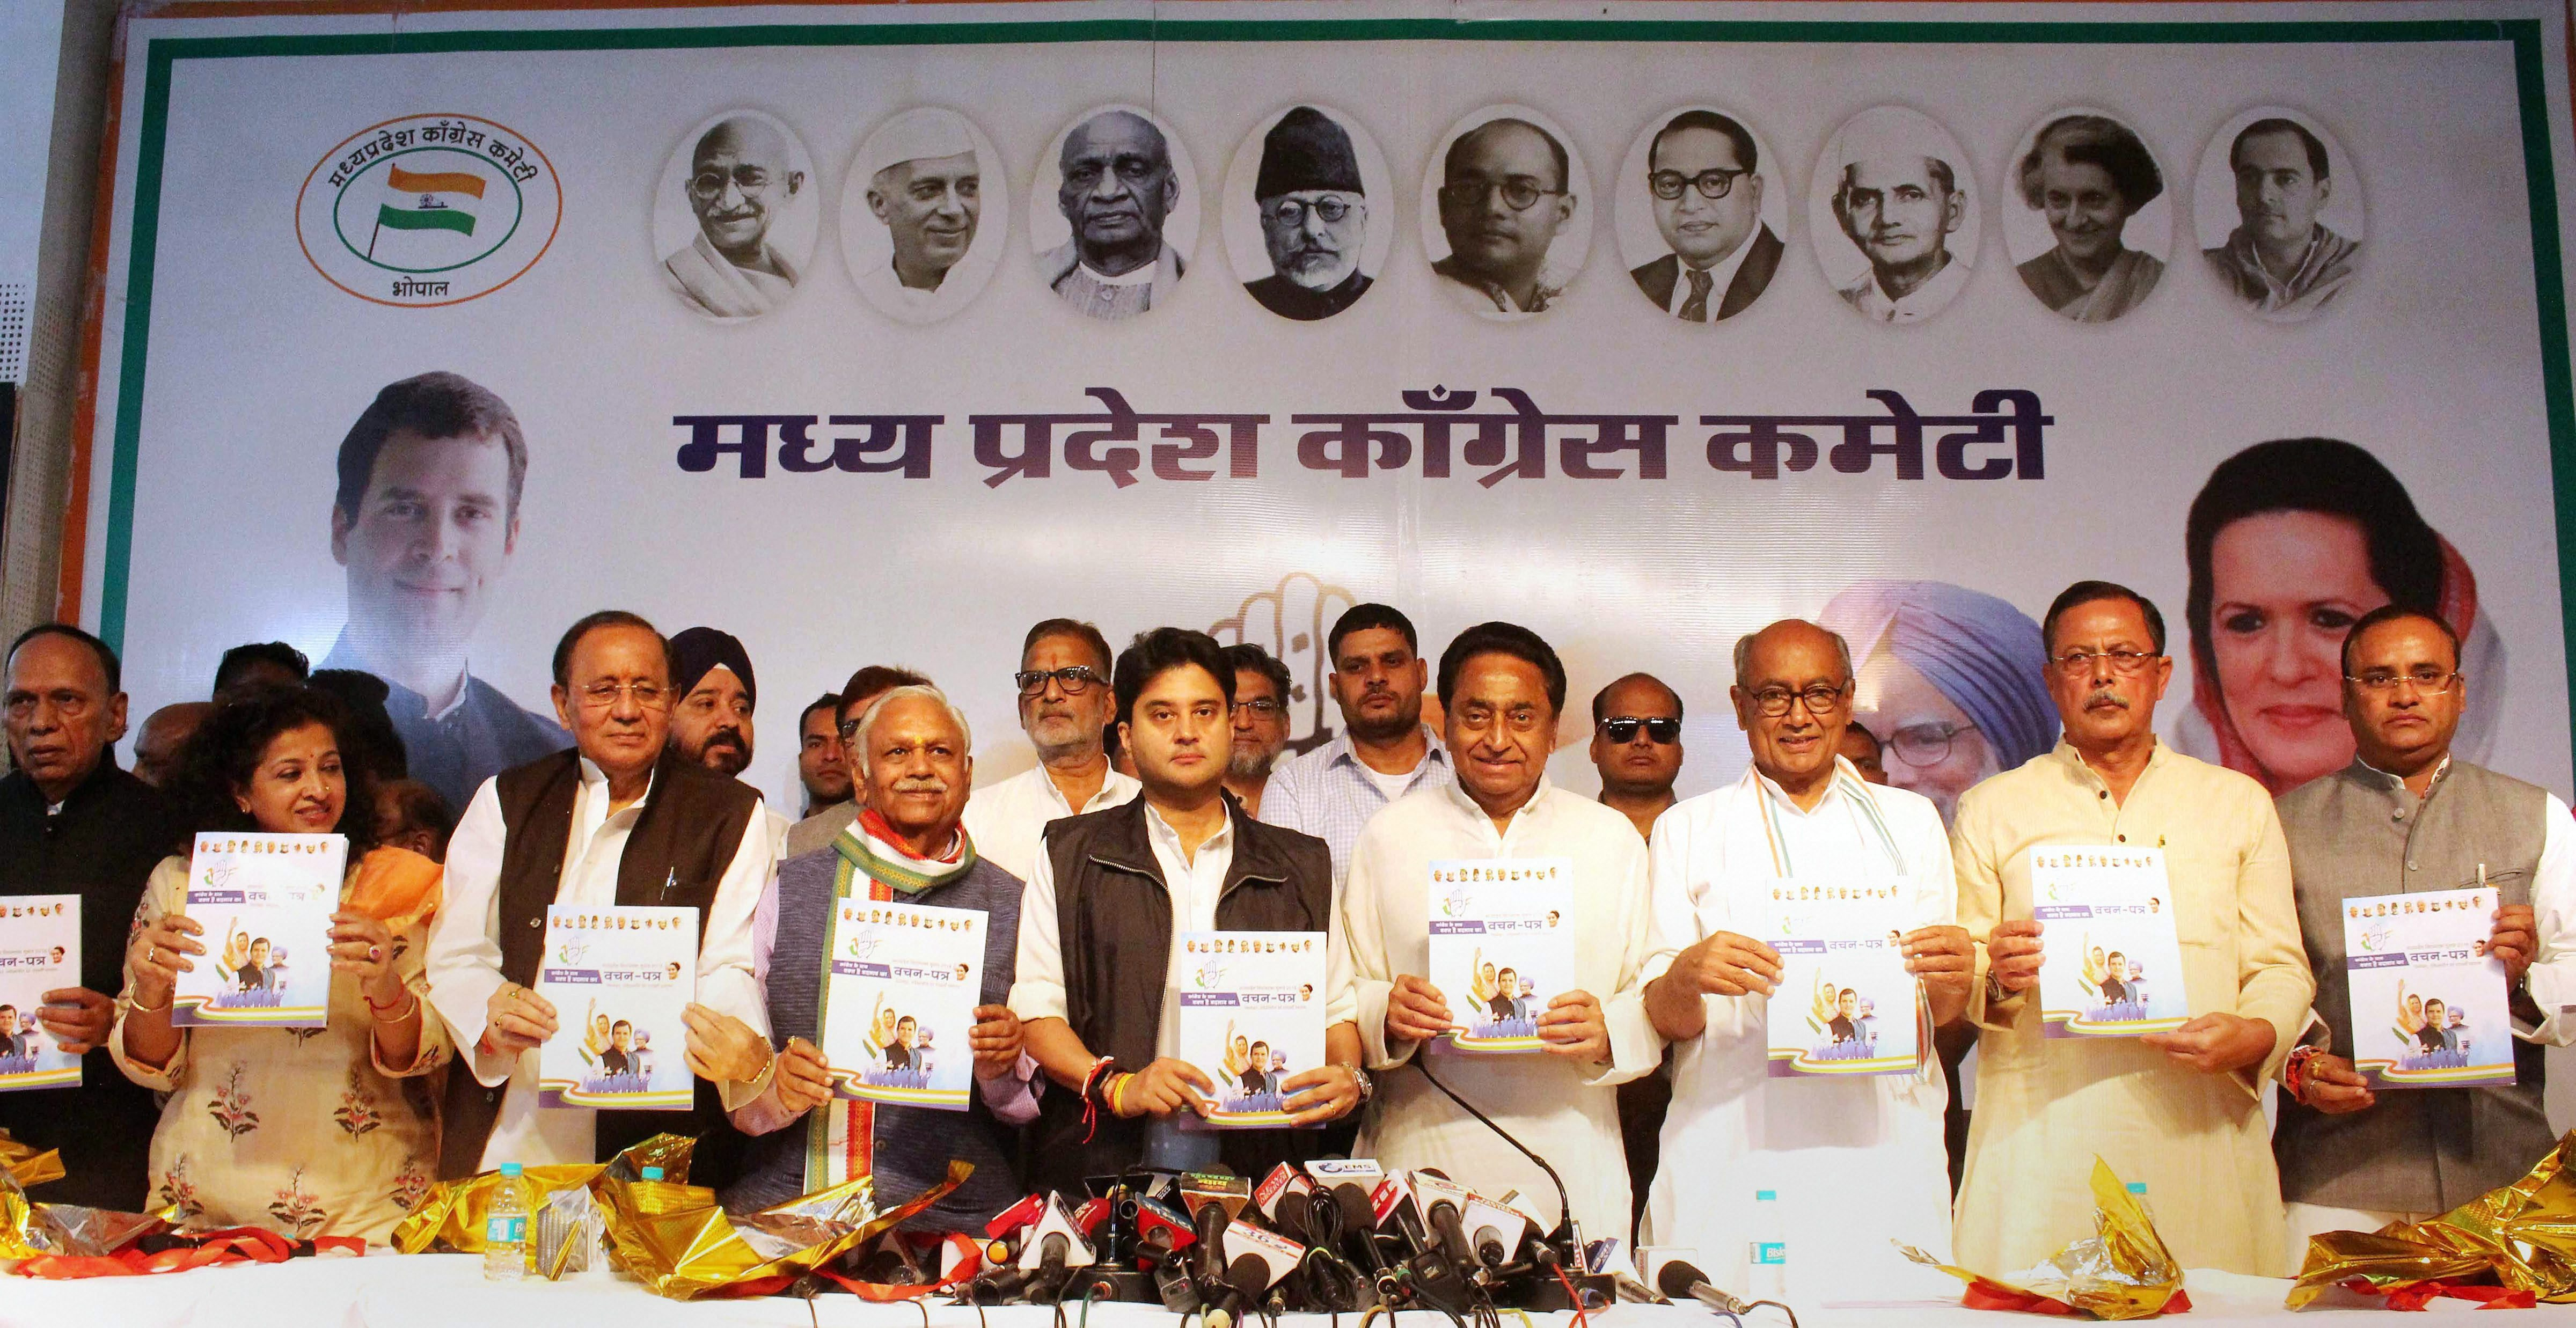 Congress leaders release the party manifesto in Bhopal on Saturday.